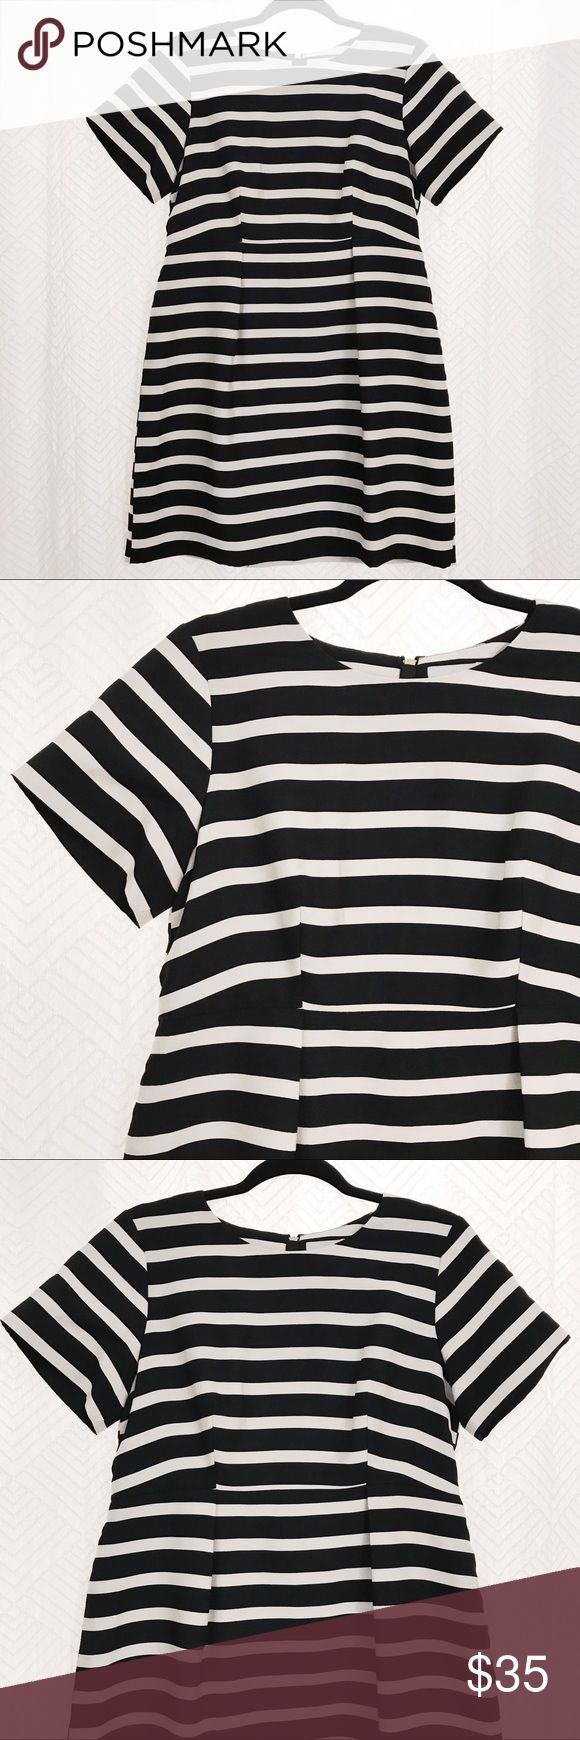 H&M Striped Dress H&M Black and Ivory Striped Dress. Size 12 (runs small, fits like a 10). A-line cut, fabric keeps its shape, visible gold back zipper. Gently used, no damage. Great for fall/winter. Add some tights and boots - you're set for a night out! H&M Dresses Mini